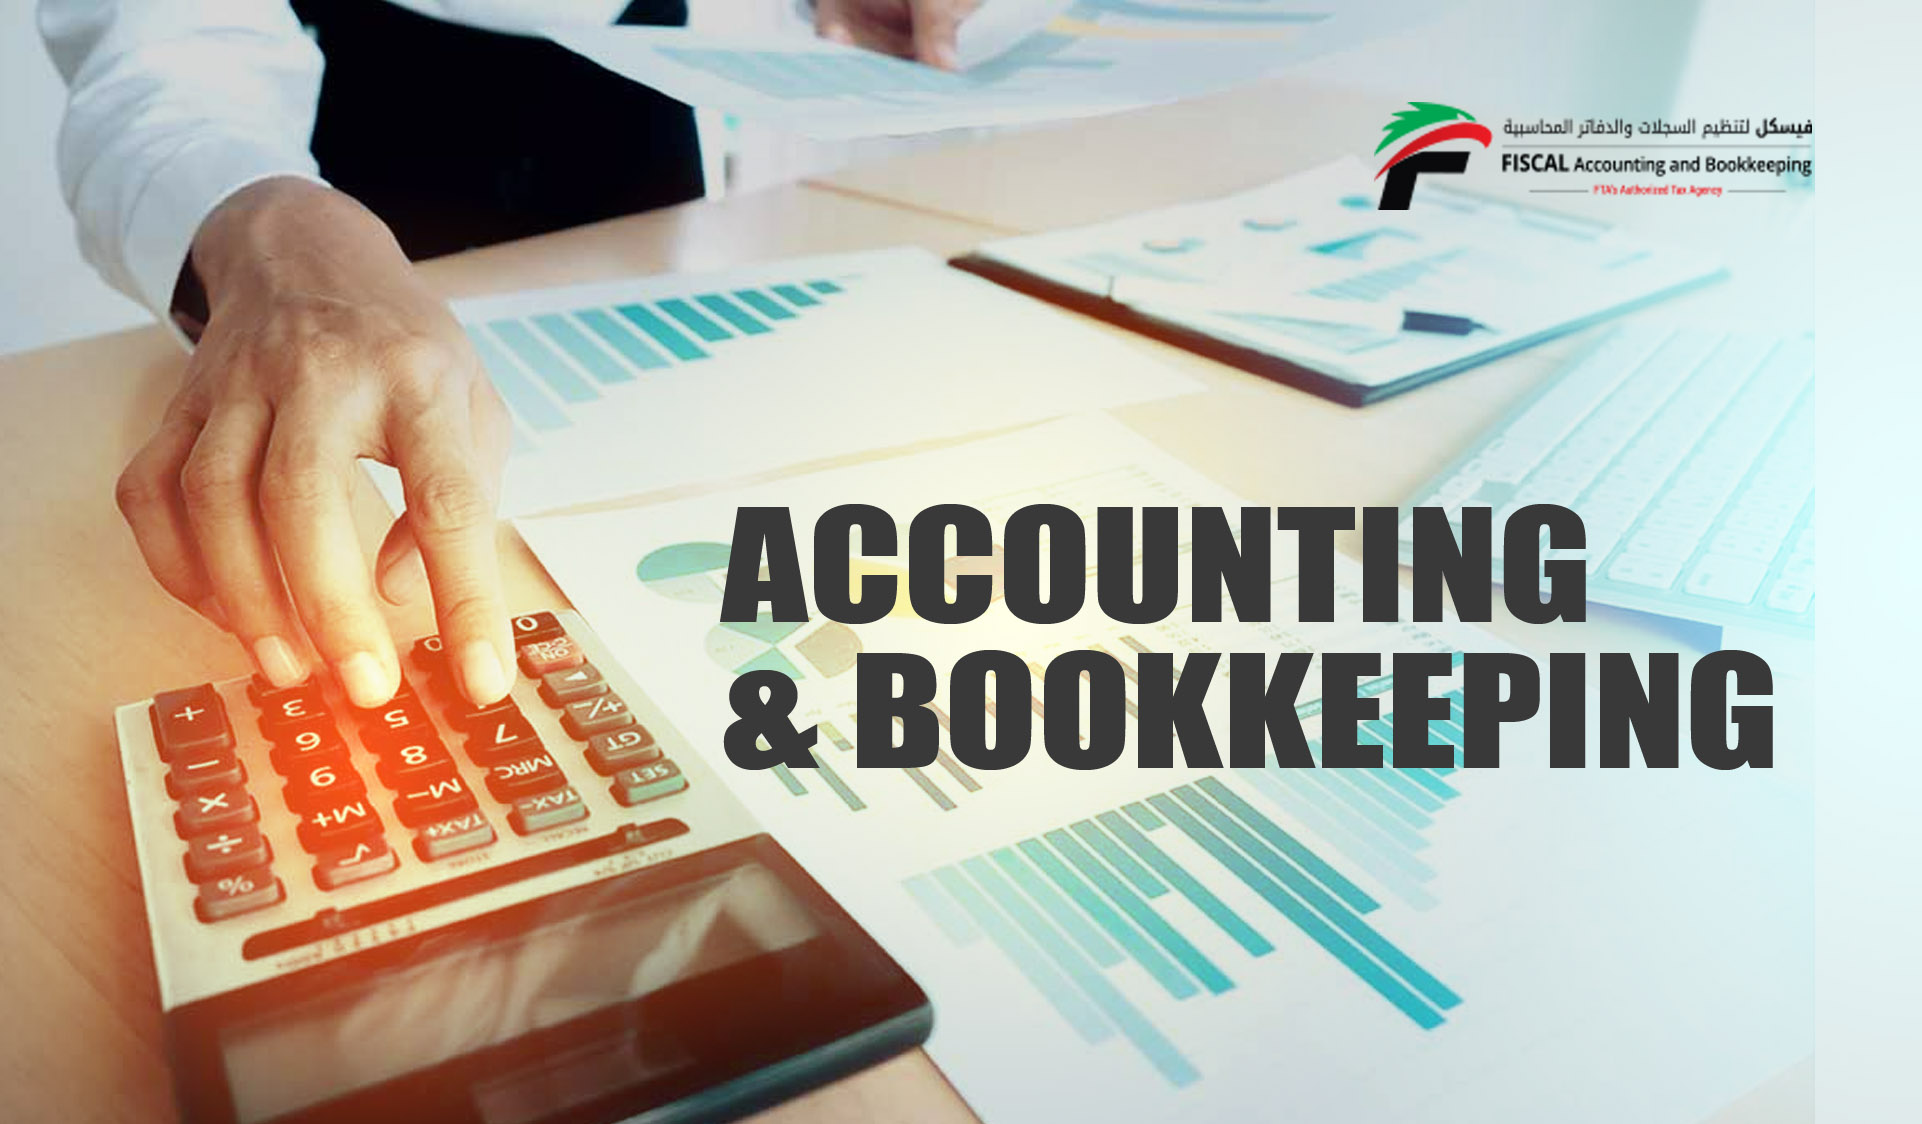 Fiscal Accounting and Bookkeeping